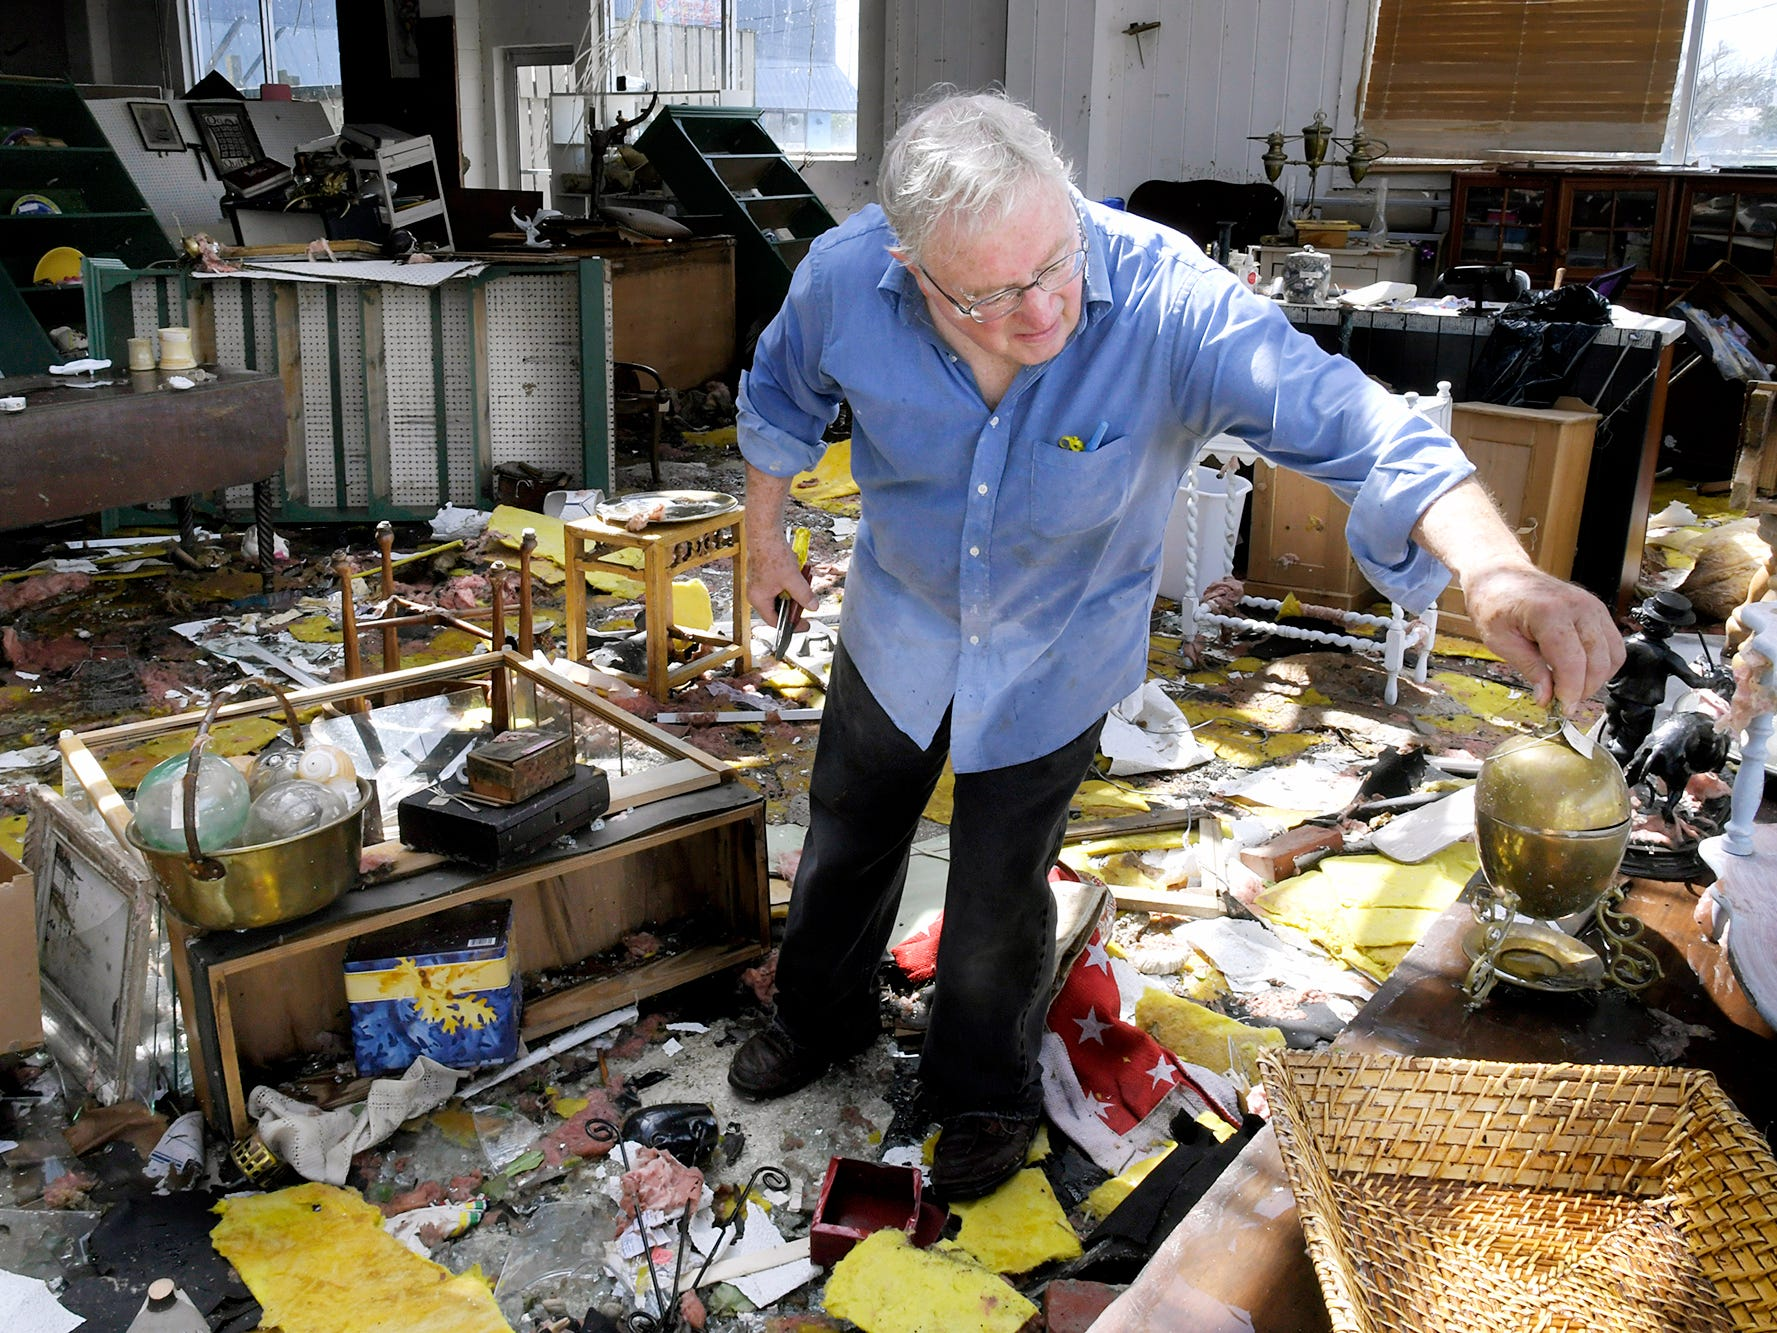 Peter Hanson helps clean up inside Seaport Antiques in Morehead City on Monday Sept. 17, 2018. Tropical Storm Florence shattered the front windows of the store over the weekend, then sucked the roof off half of the store and dropped it in the parking lot next door.